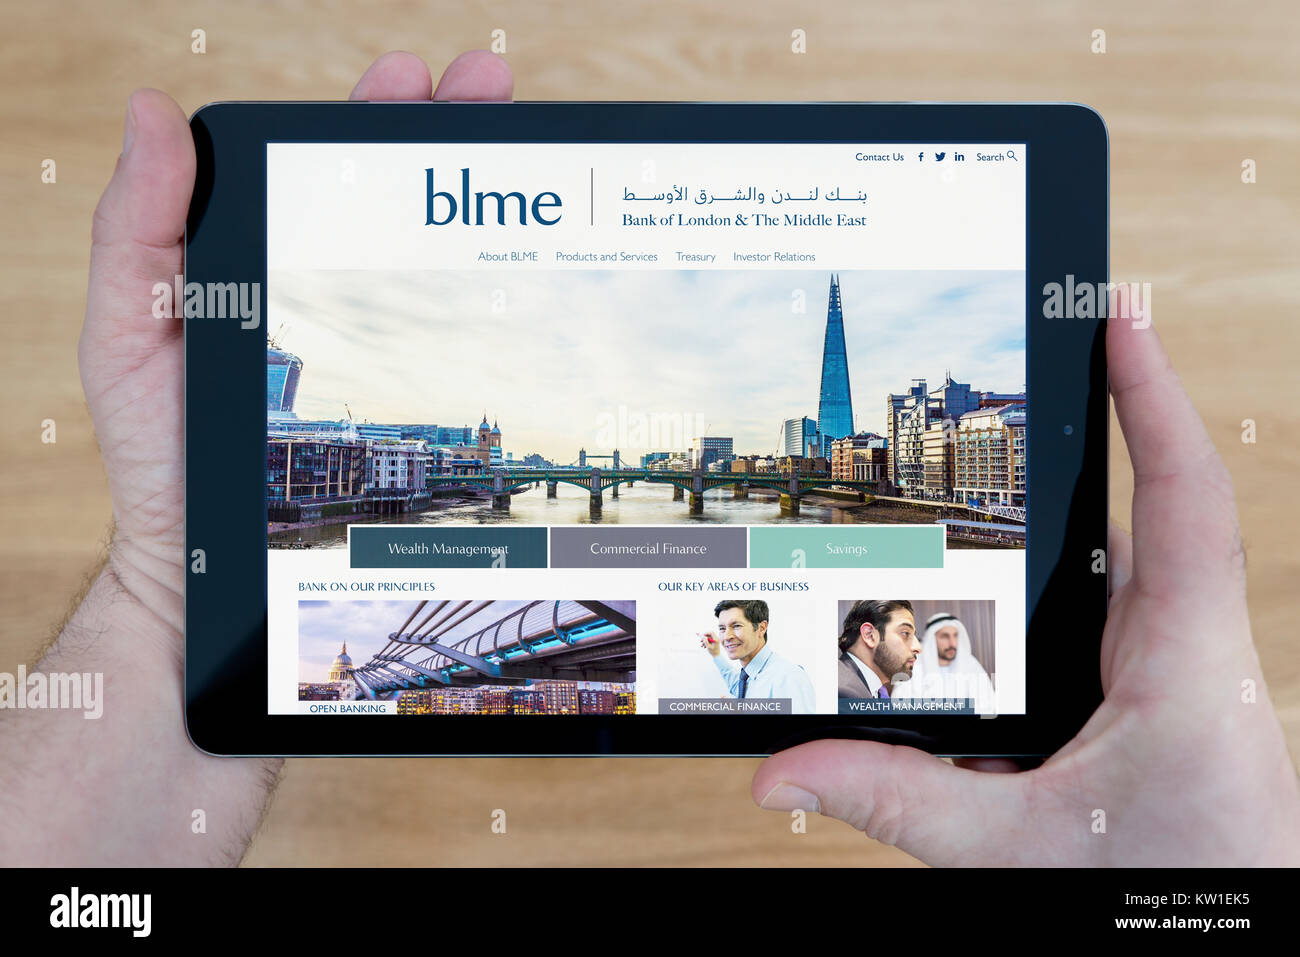 A man looks at the Bank of London and the Middle East (BLME) website on his iPad tablet device, on a wooden table - Stock Image